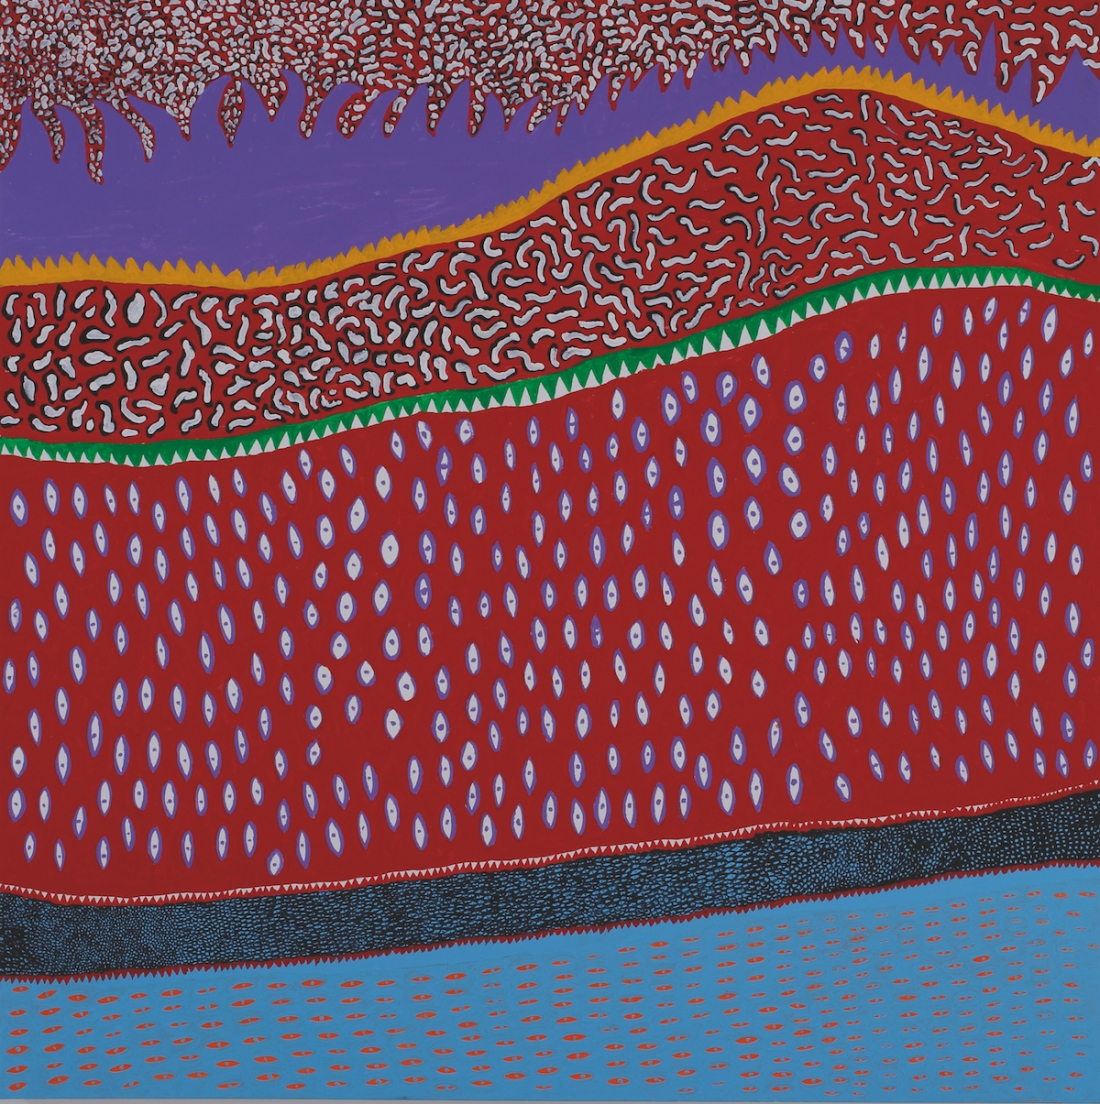 Yayoi Kusama, Lights Of The Heart, 2016, acrylic on canvas, 194 x 194 cm. Picture credit: artwork © Yayoi Kusama (page 181)